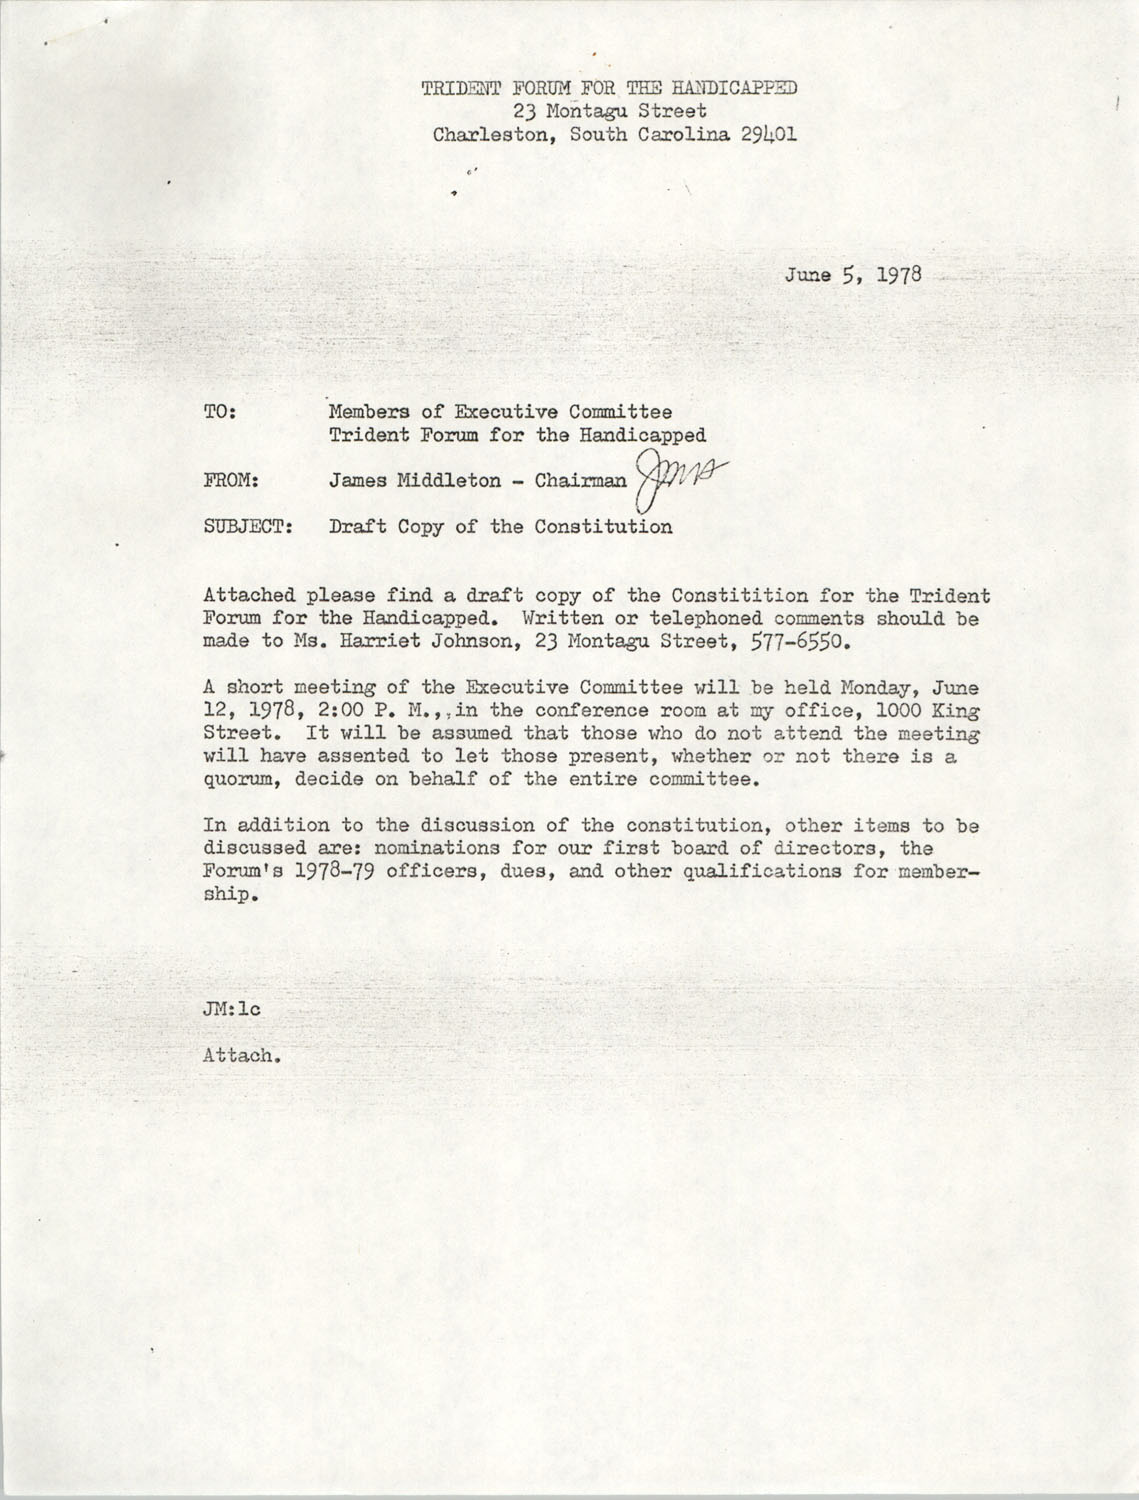 Memorandum from James Middleton to Members of Executive Committee; Trident Forum for the Handicapped Constitution, June 5, 1978